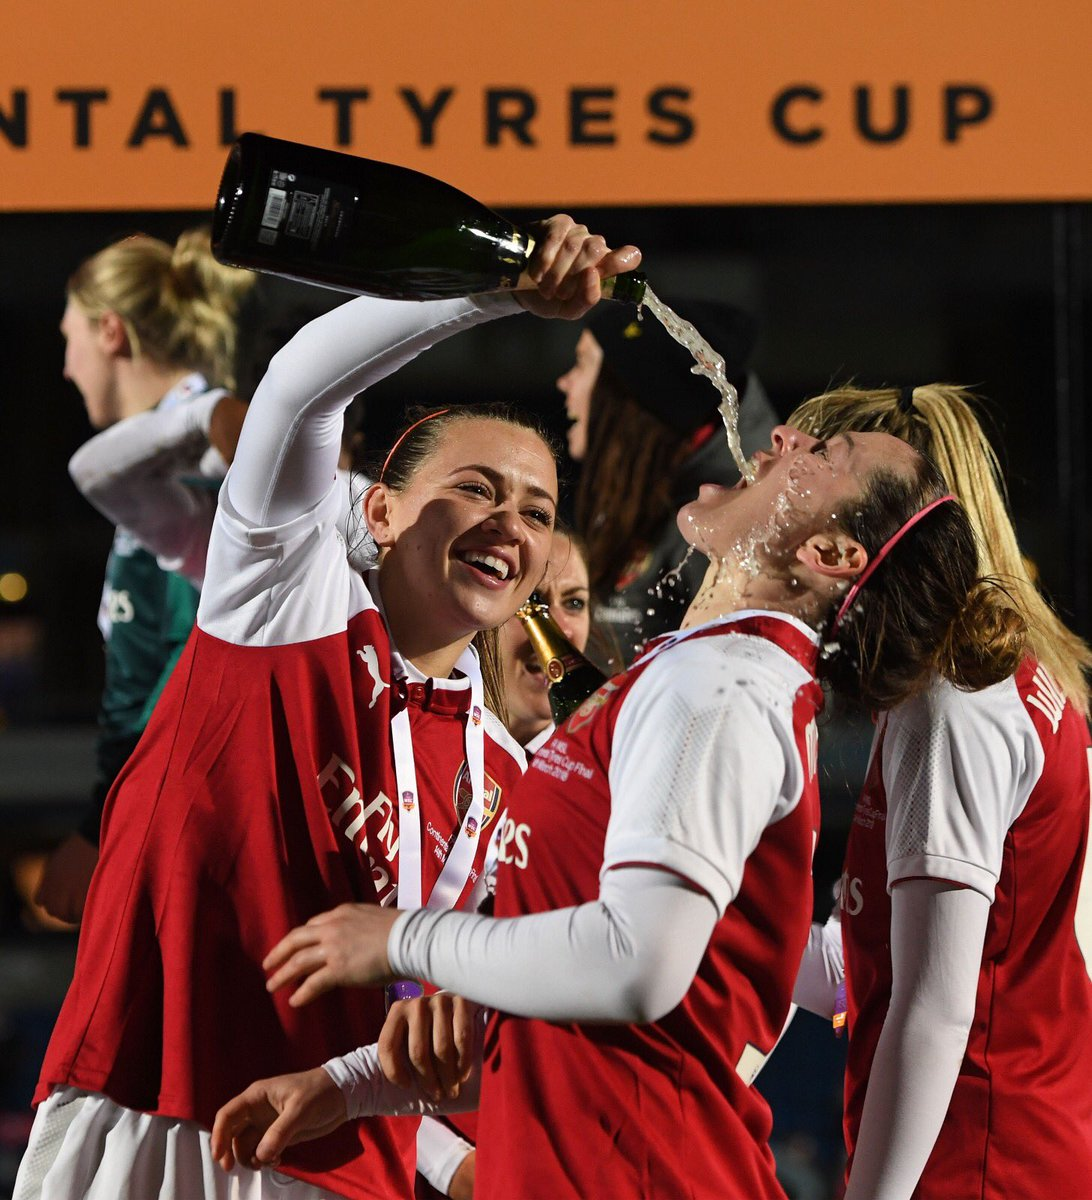 Thanks to all the fans & the girls for the last 7 years - we've had some laugh! @ArsenalWFC https://t.co/5Xk0baY2hA